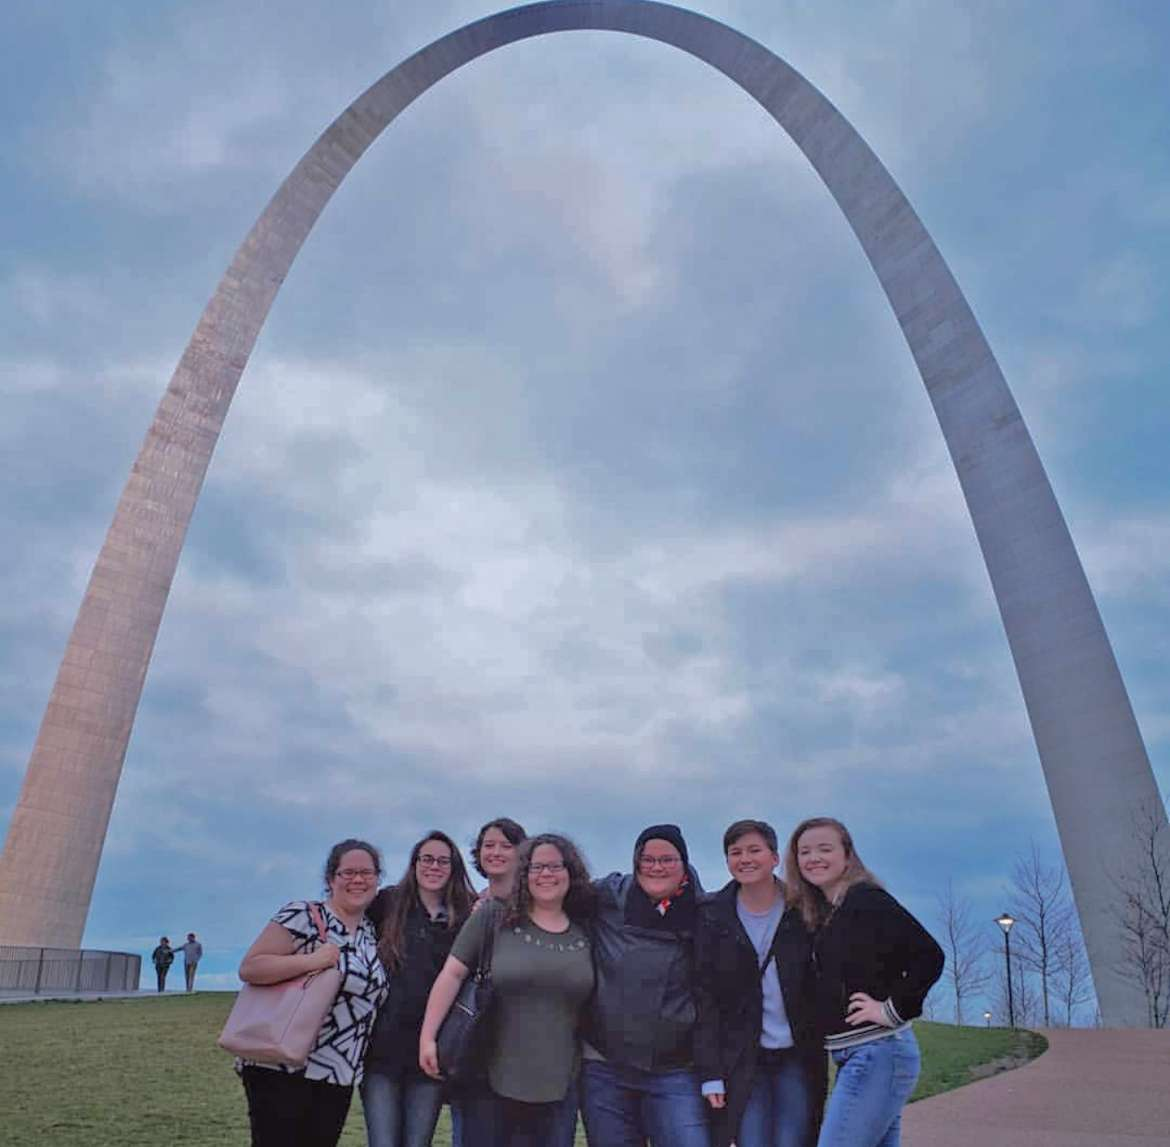 Pictured at the St. Louis Gateway Arch are (l. to r.) Alexandra McCarron, Charles Town; Lilli Sutton, Shepherdstown; Sarah Markle, Keyser; Claudia McCarron, Charles Town; Gabrielle Hersey, Delray; Kylie Krummel Byers, alumna; and Katharine Hardy, Shenandoah Junction.